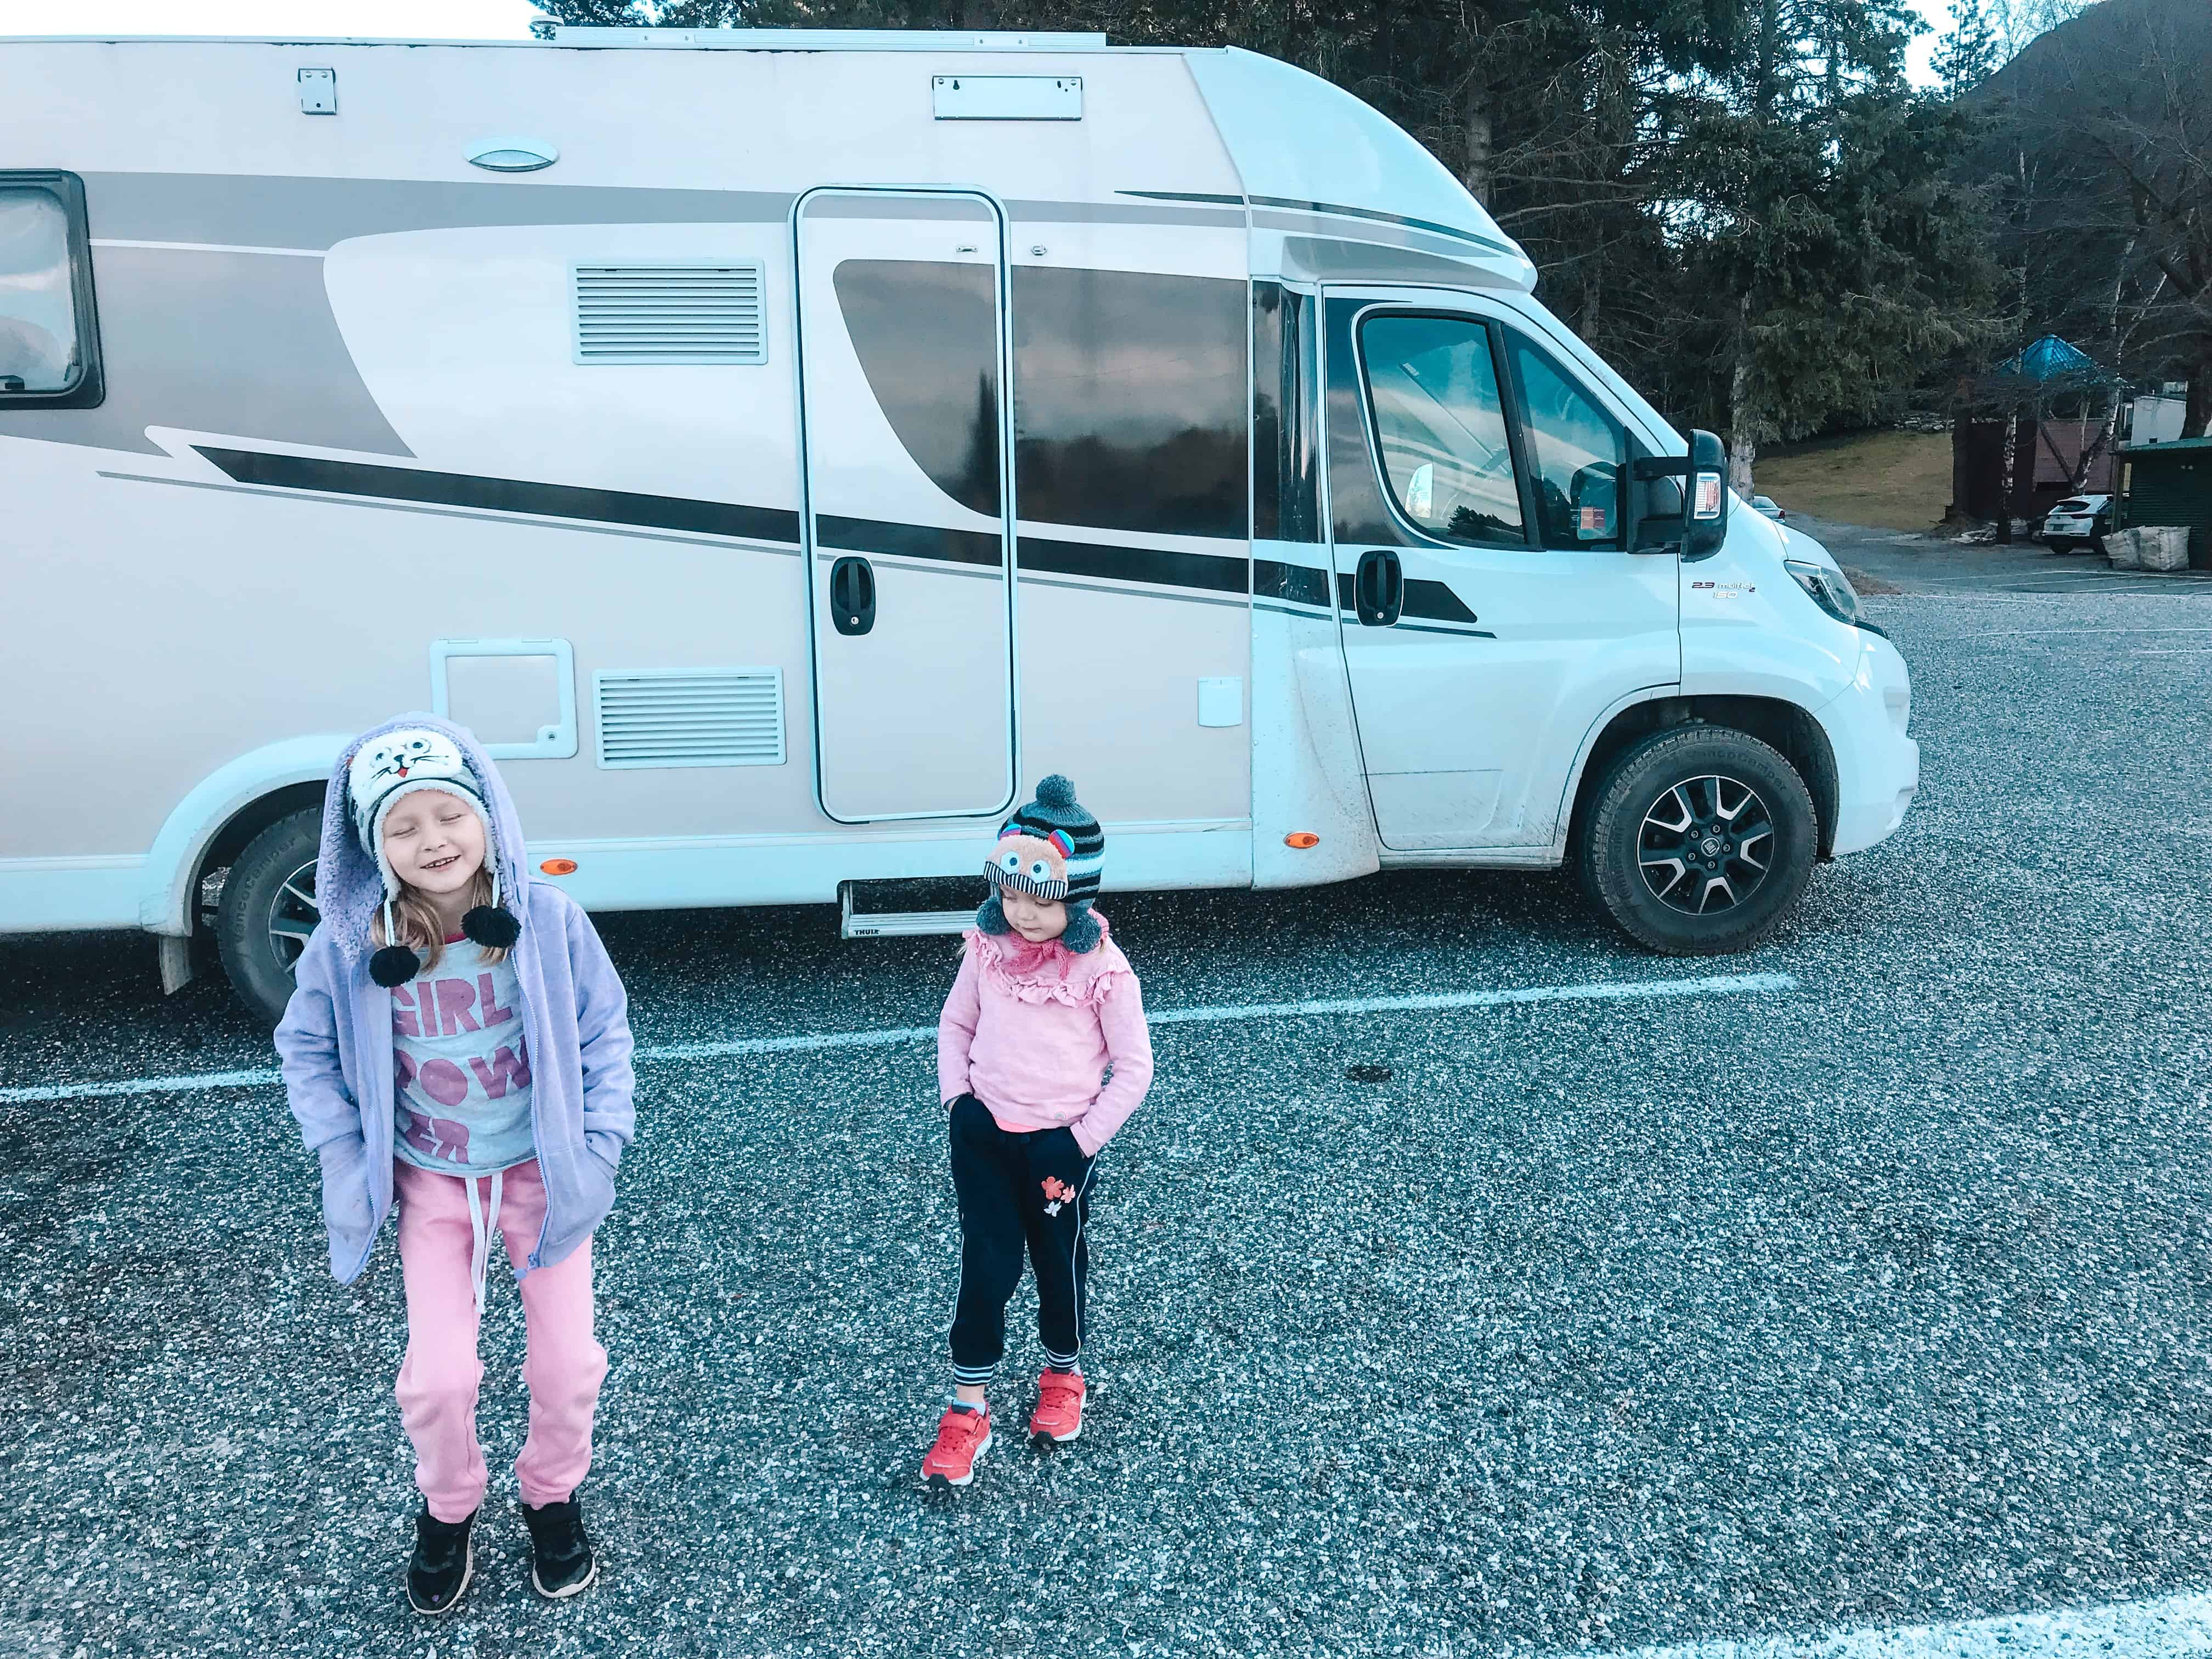 Outback 4 luxury motorhome rental new zealand